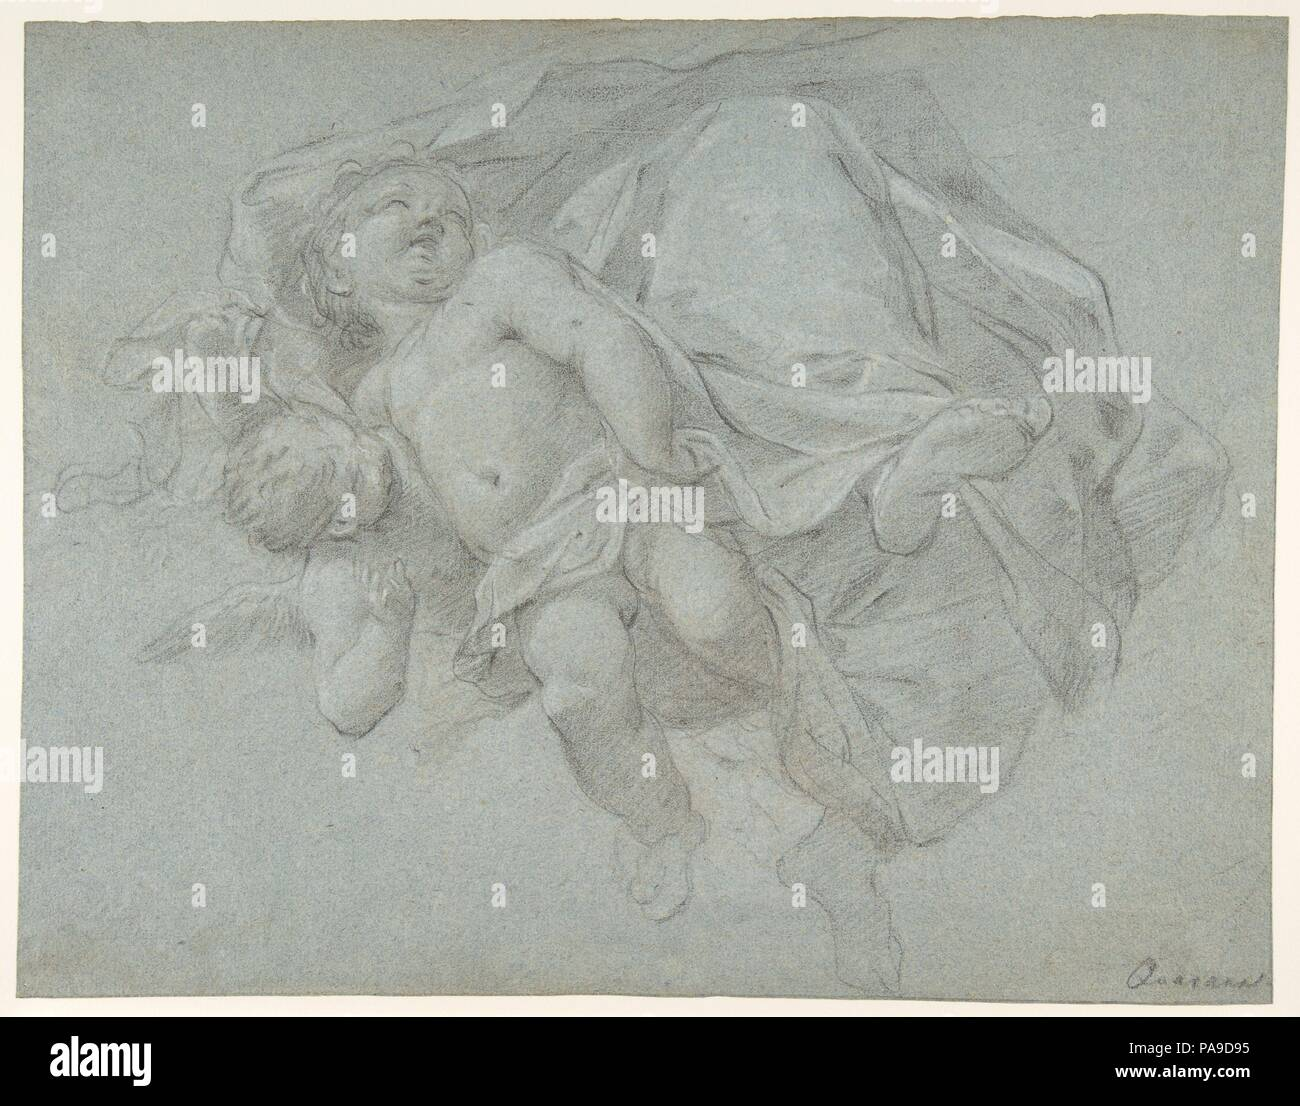 Two Putti Supporting the Lower Part of a Draped Figure (recto); Two Putti (verso). Artist: Jacopo Guarana (Italian, Venice 1720-1808 Venice). Dimensions: 10 11/16 x 13 11/16in. (27.1 x 34.8cm). Date: 1720-1808. Museum: Metropolitan Museum of Art, New York, USA. - Stock Image